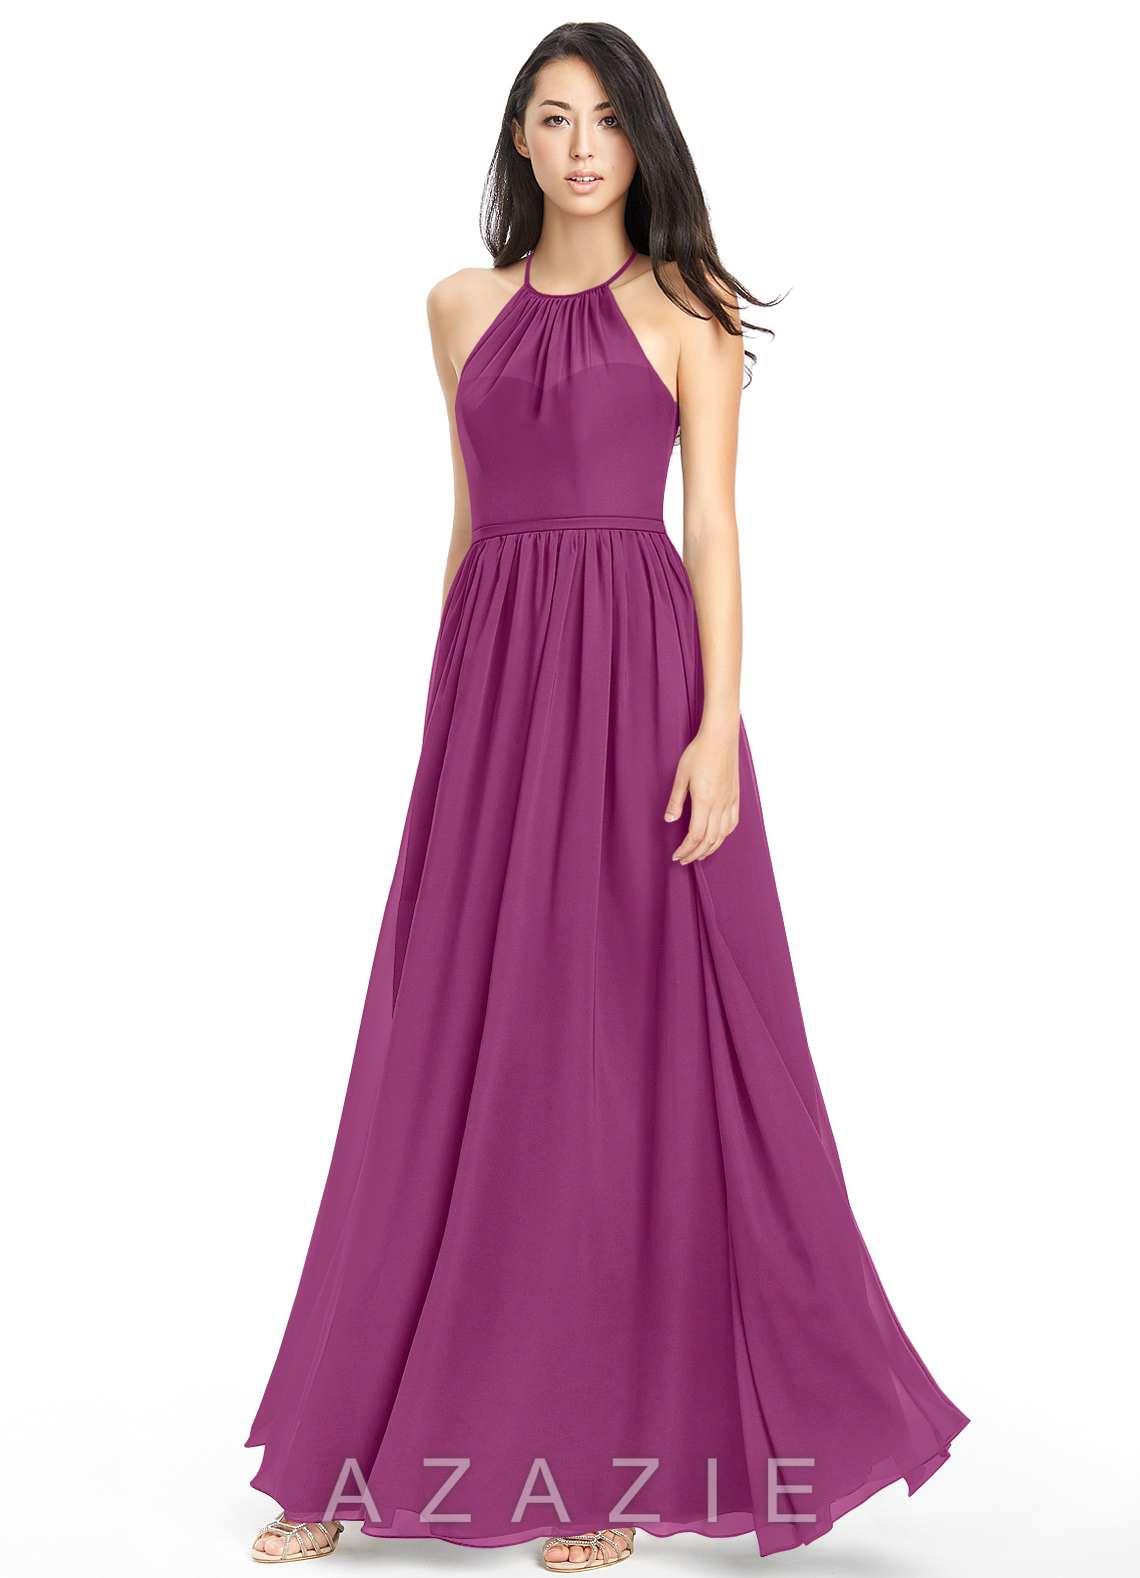 Azazie kailyn bridesmaid dress azazie loading zoom ombrellifo Choice Image